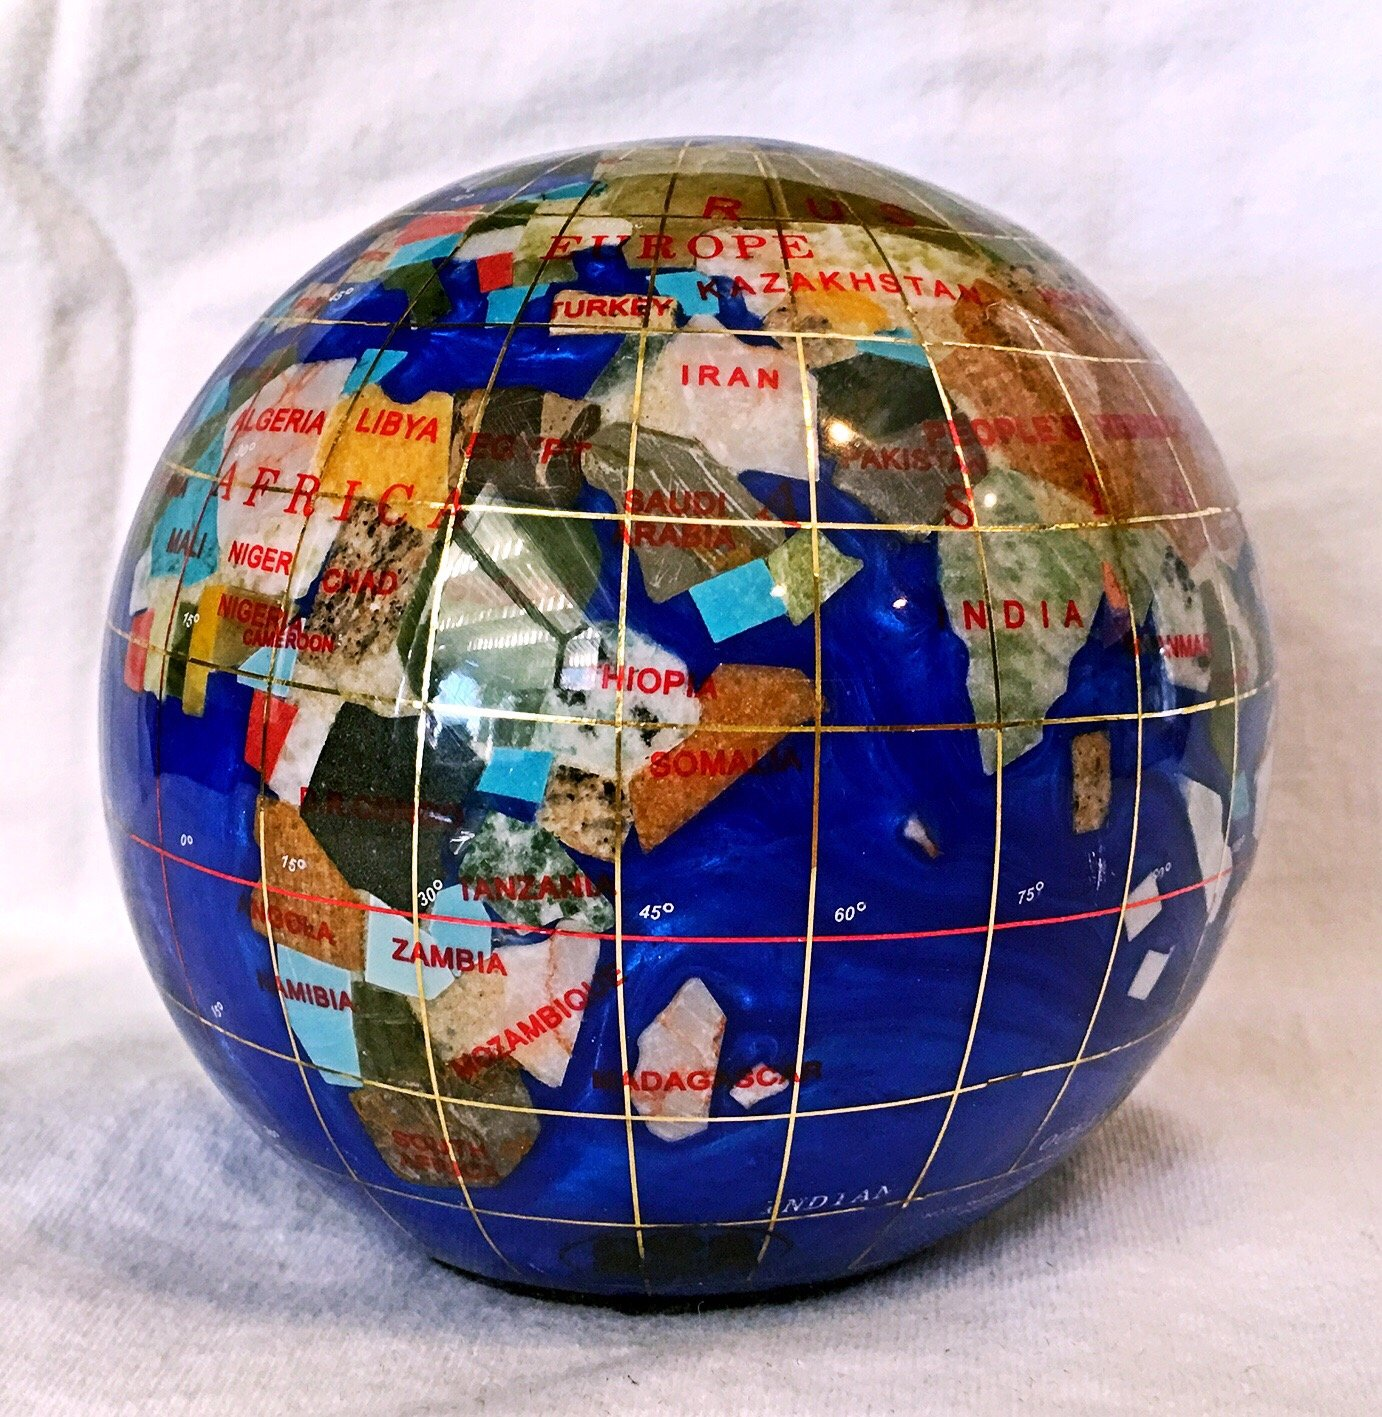 Unique Art 4.3'' (110 mm) Diameter Gemstone Globe Paperweight Paper weight (Blue Pearl Swirl) by Unique Art Since 1996